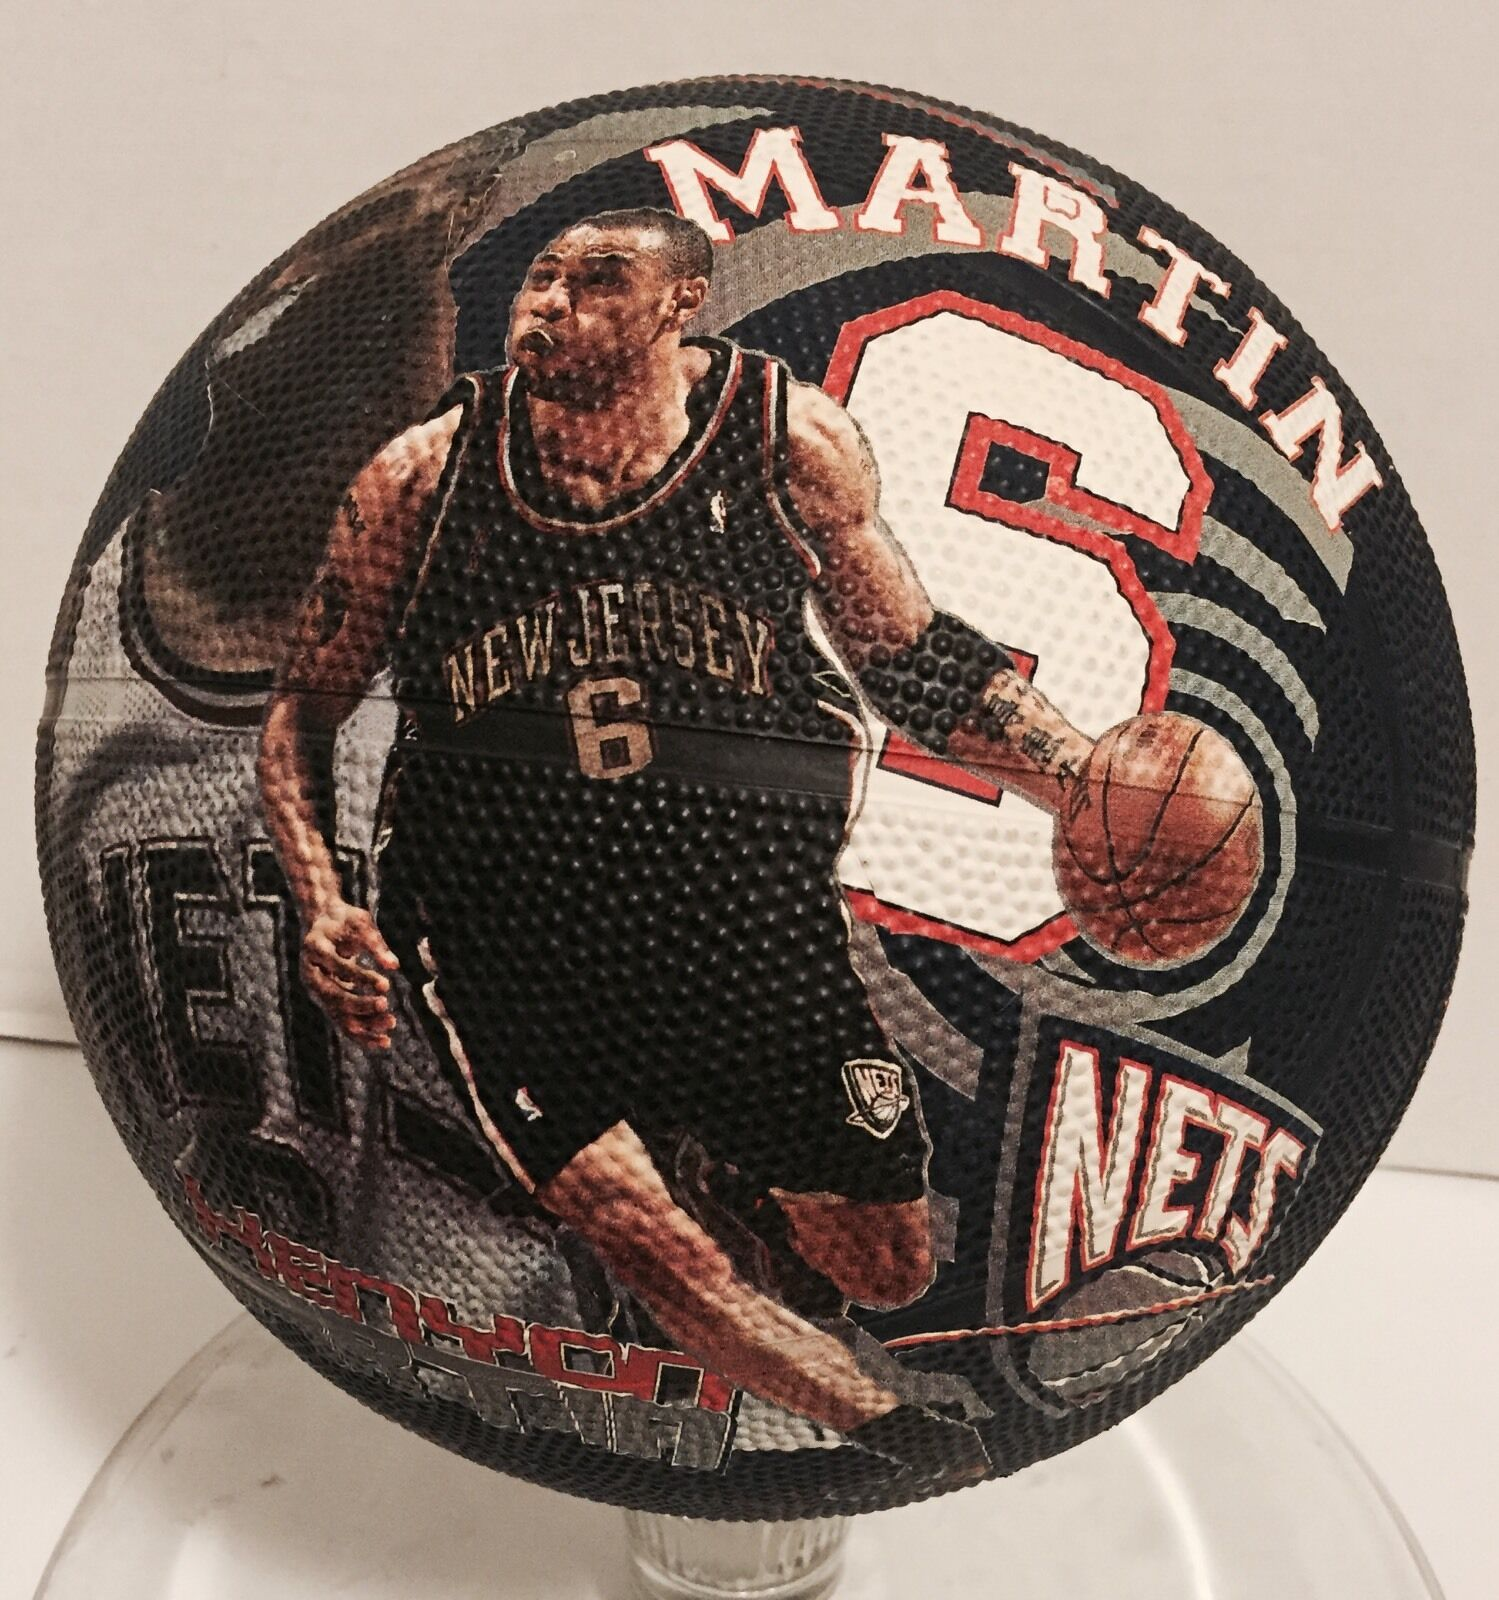 New Jersey Nets Kenyon Martin Fotoball Basketball Collectible